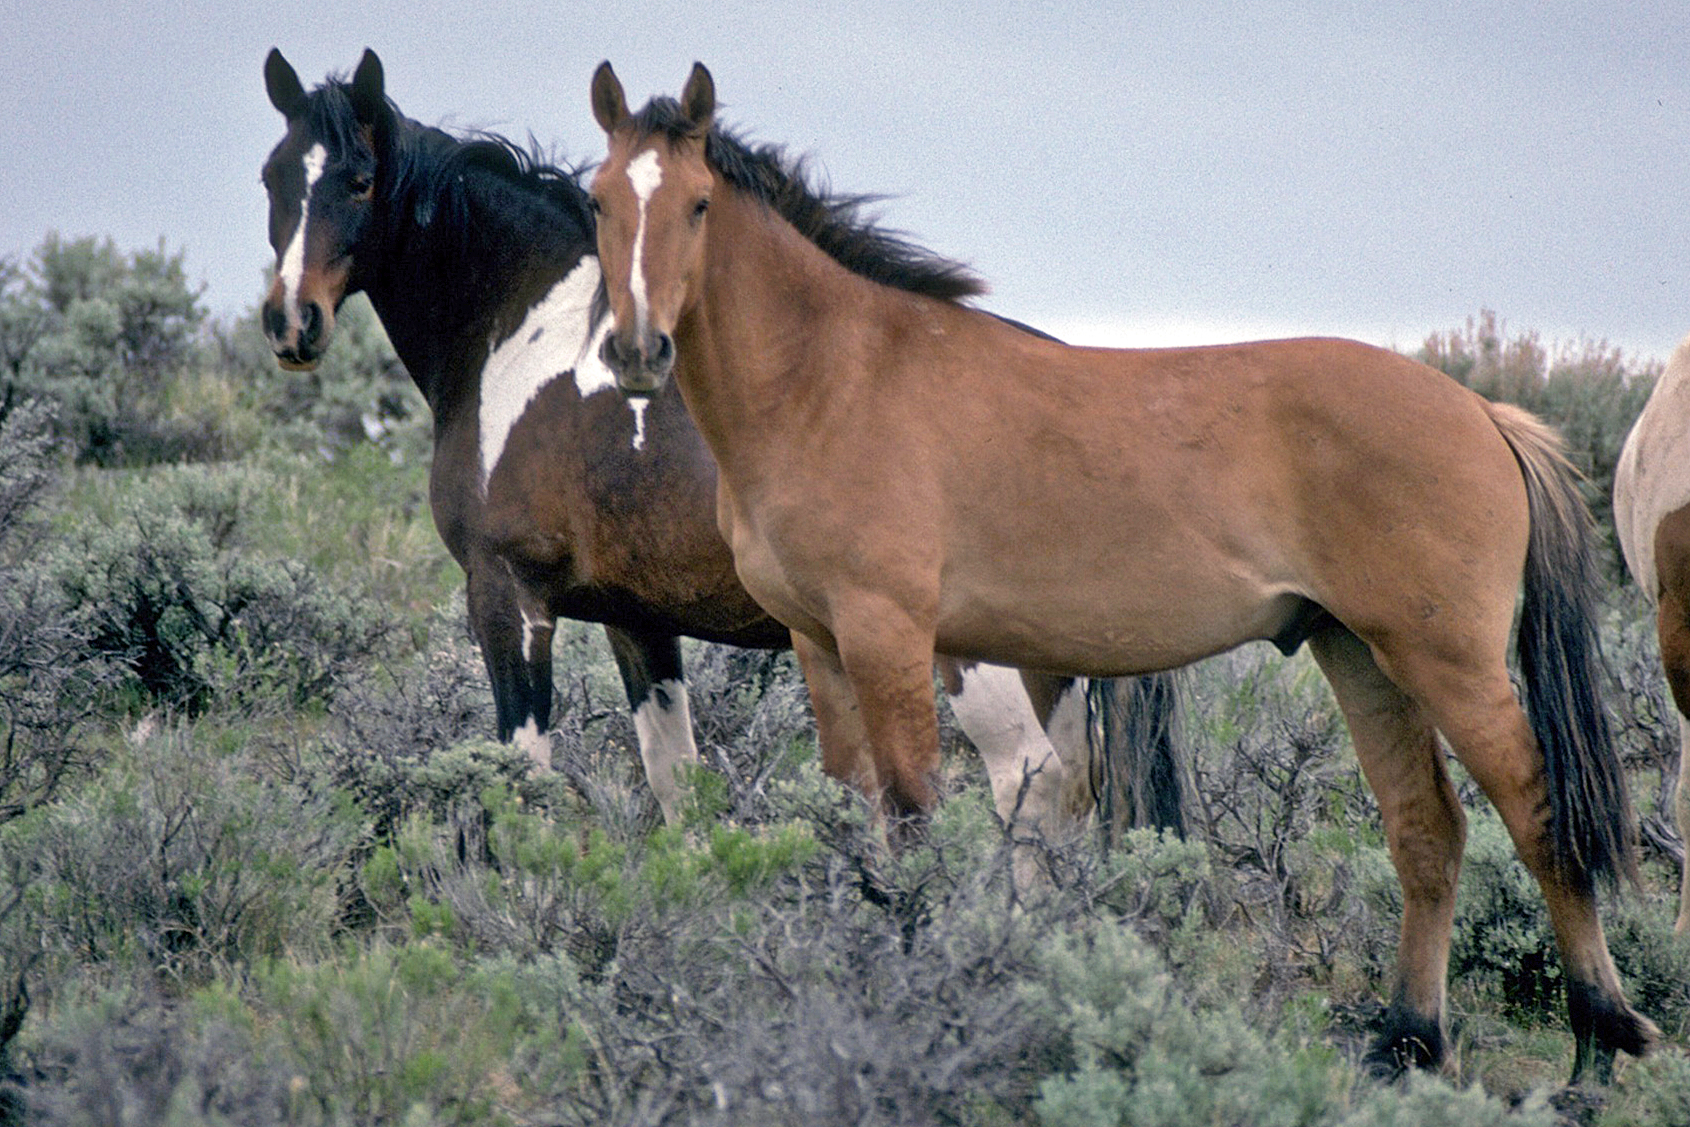 Group Files Legal Petition to Stop the Use of Sterility-Inducing Pesticide PZP on Wild Horses